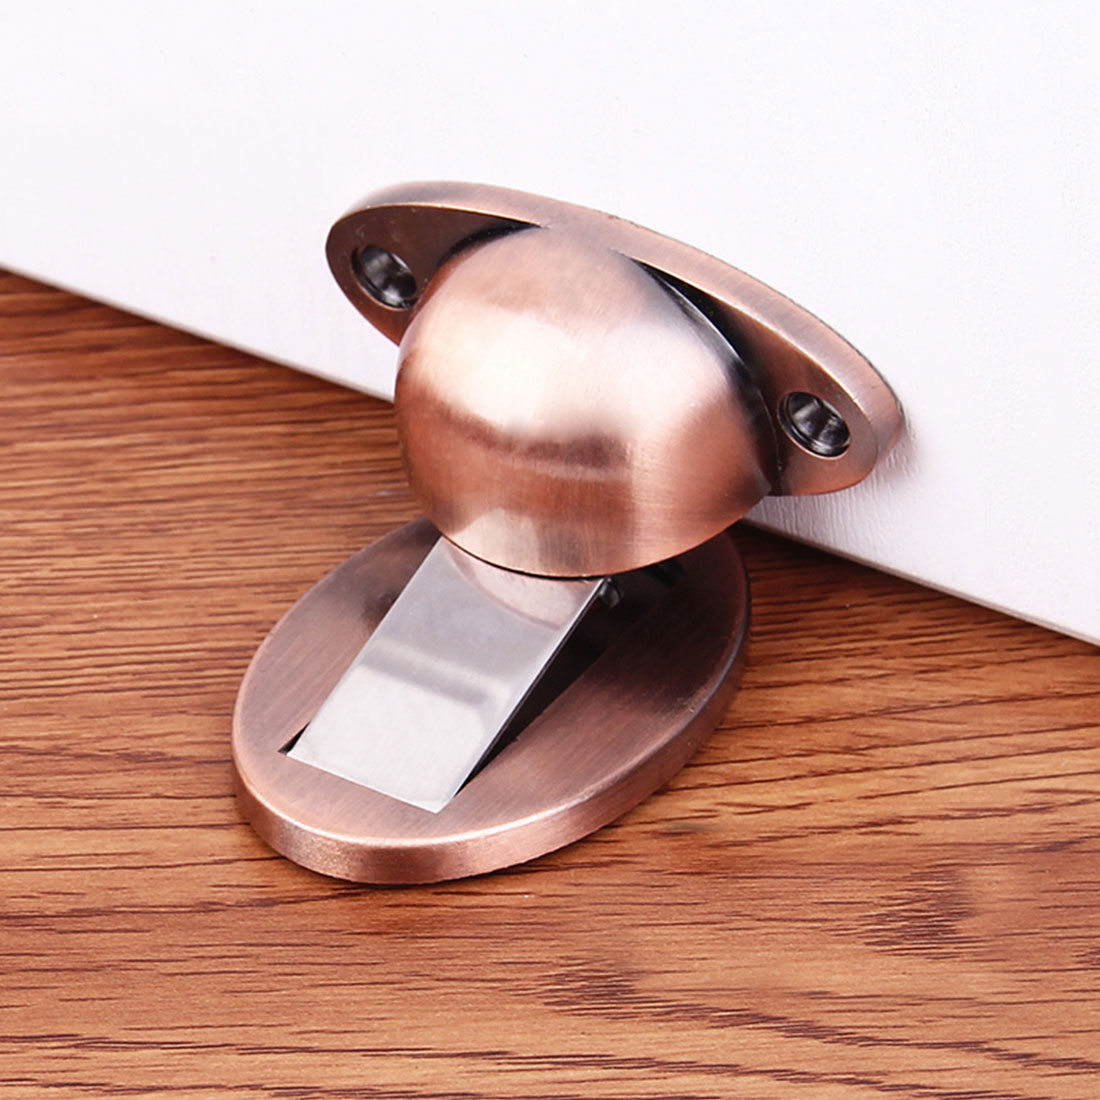 Doorstop Furniture Hardware Magnet Door Stops Sticker Door Stopper Magnetic Door Holder Toilet Glass Door Hidden zinc alloy casting wall floor mounted safety catch magnetic door stopper door stops hidden doorstop hardware